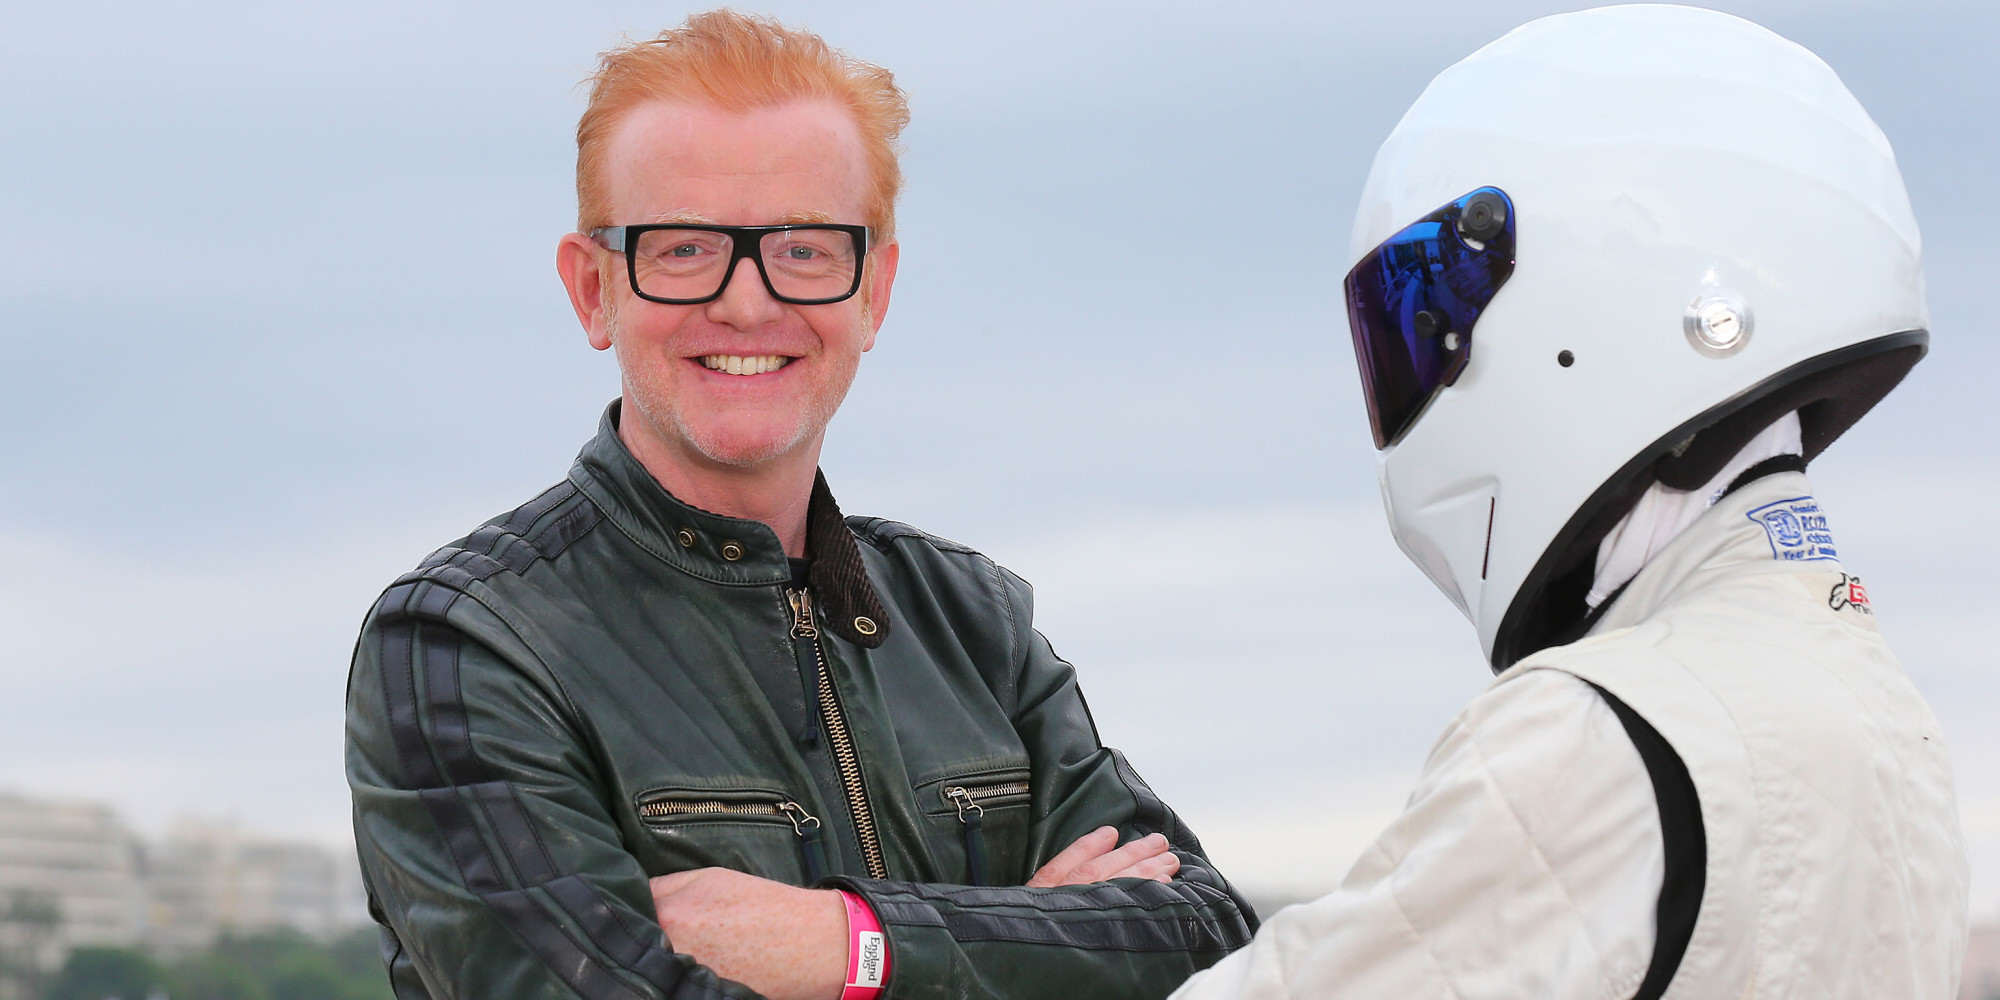 New Top Gear Host Throws Shade At Past It Jeremy Clarkson o CHRIS EVANS TOP GEAR facebook